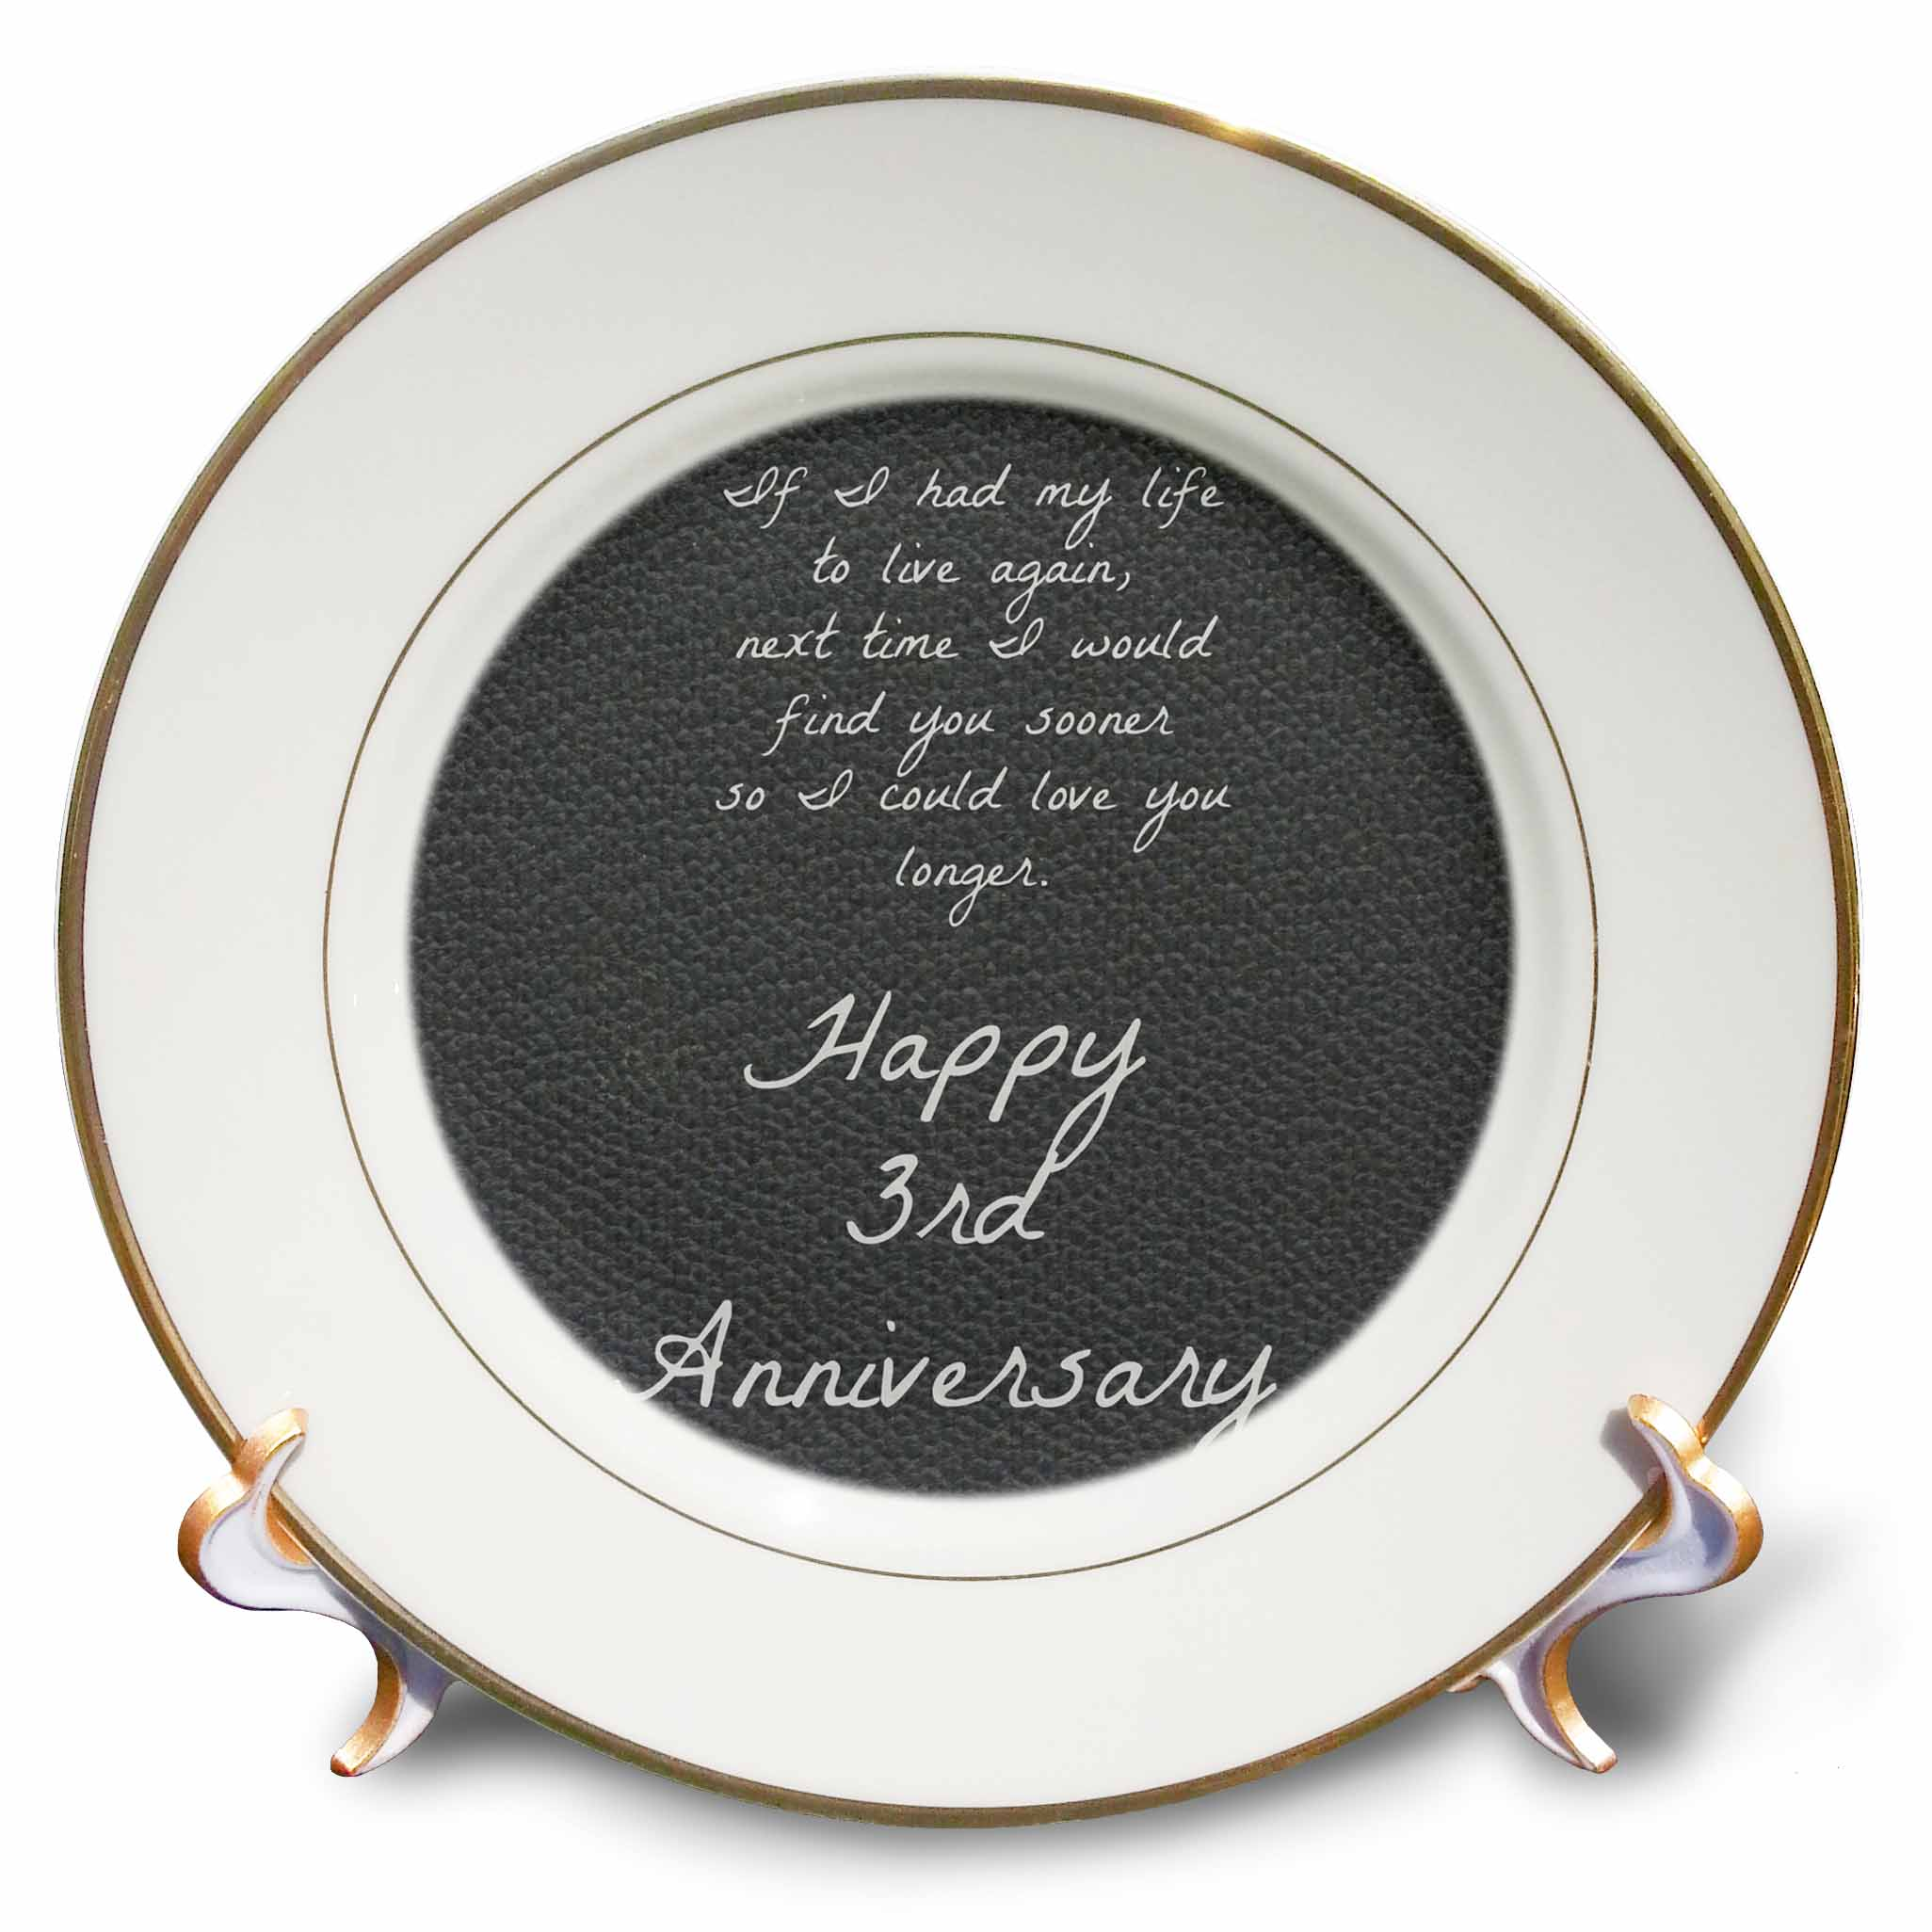 3dRose 3rd Anniversary love you longer on faux leather-like background, Porcelain Plate, 8-inch